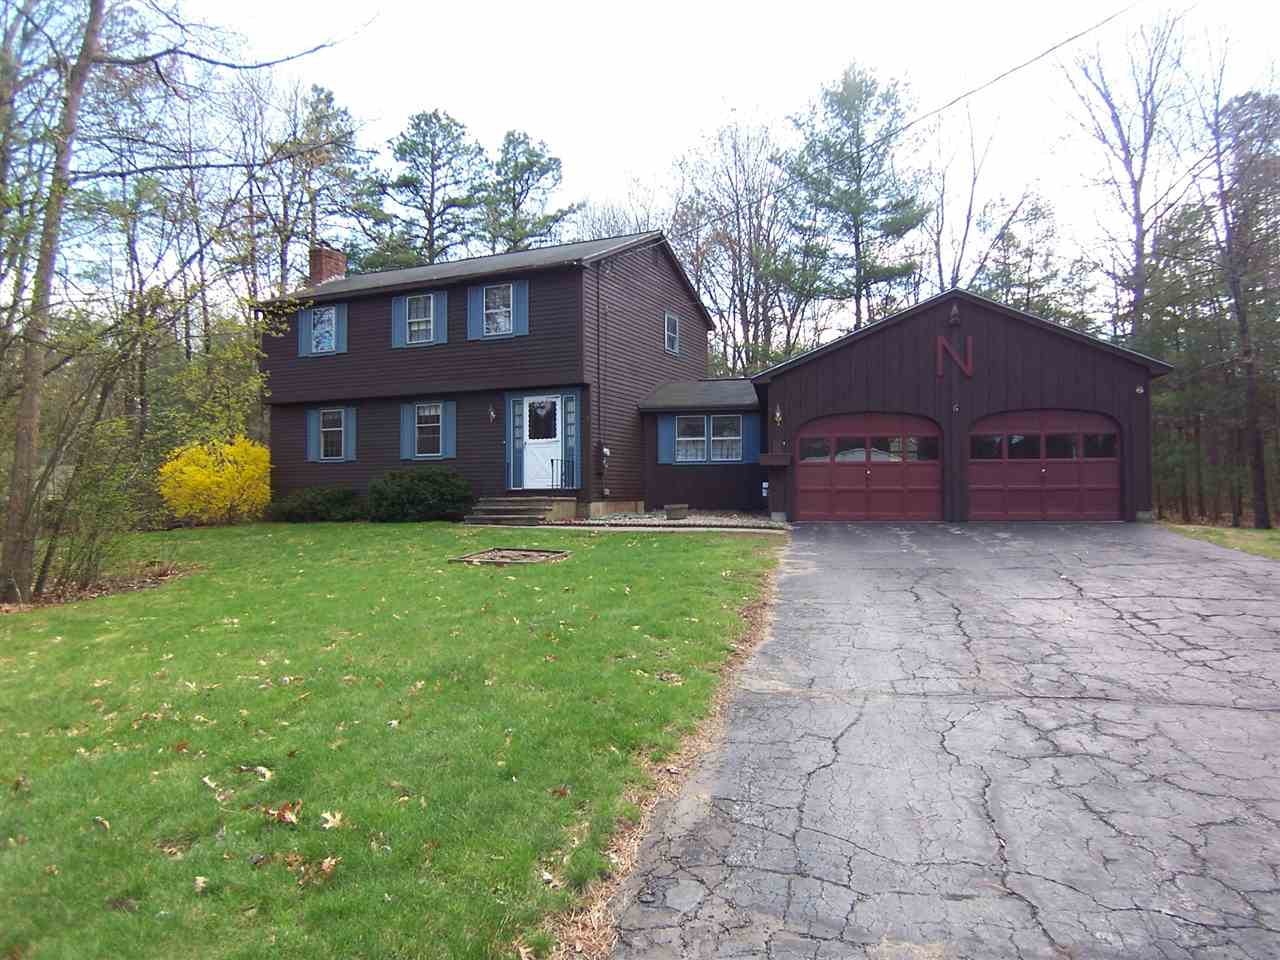 Photo of 9 Douglas Drive Amherst NH 03031